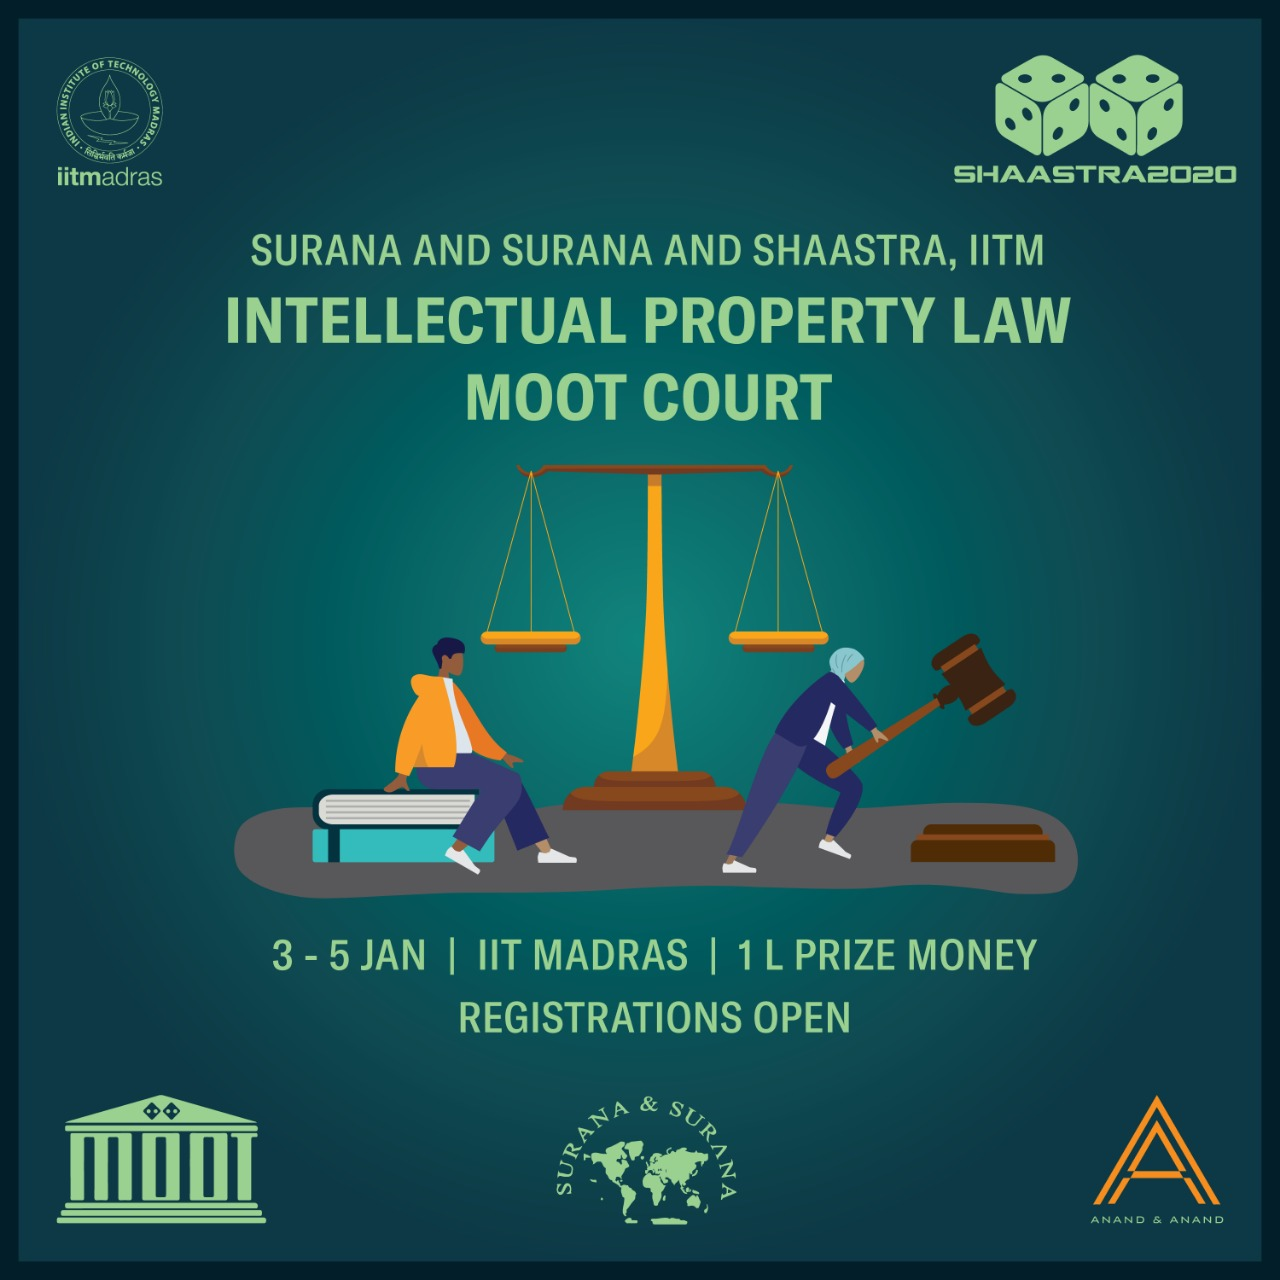 Surana & Surana and Shaastra IITM's IP Law Moot Court